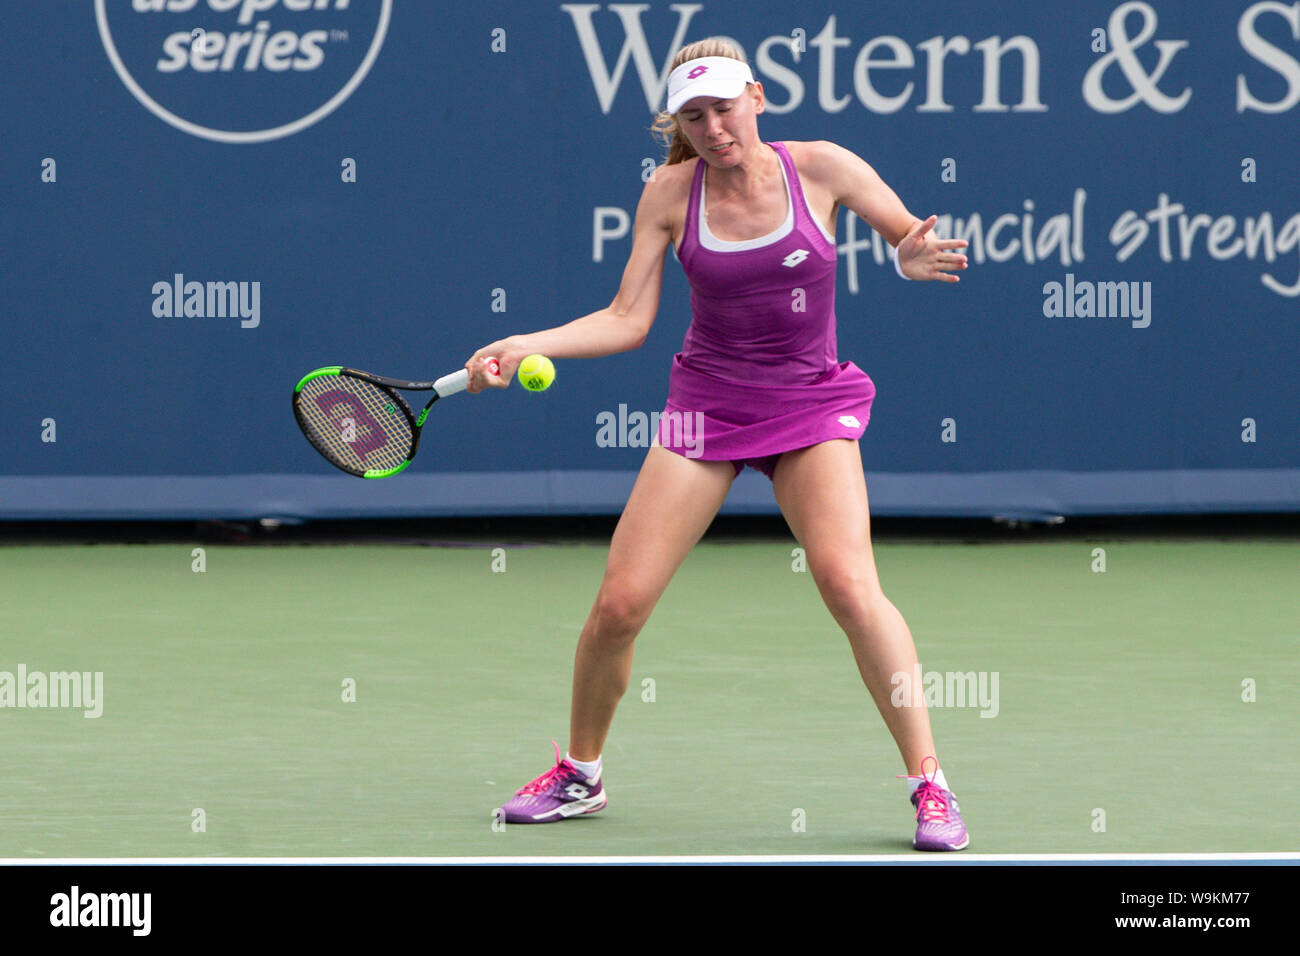 Mason, Ohio, USA. 14th Aug, 2019. Ekaterina Alexandrova (RUS) returns serve during Wednesday's round of the Western and Southern Open at the Lindner Family Tennis Center, Mason, Oh. Credit: Scott Stuart/ZUMA Wire/Alamy Live News Stock Photo